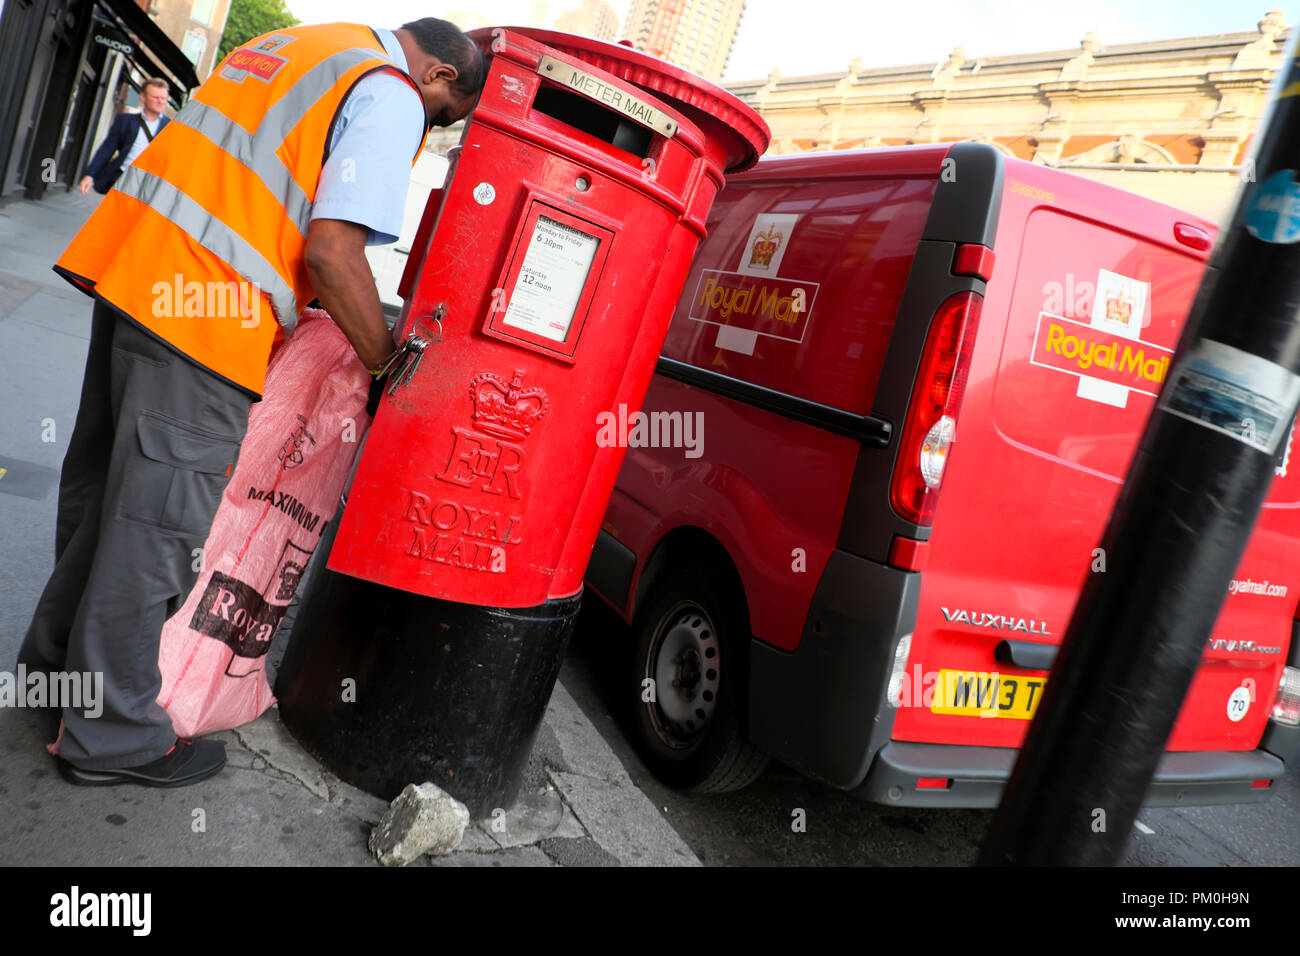 Royal Mail postal worker transferring mail into a sack bag from a red post box to his postal van in Charterhouse St Smithfield London UK  KATHY DEWITT - Stock Image